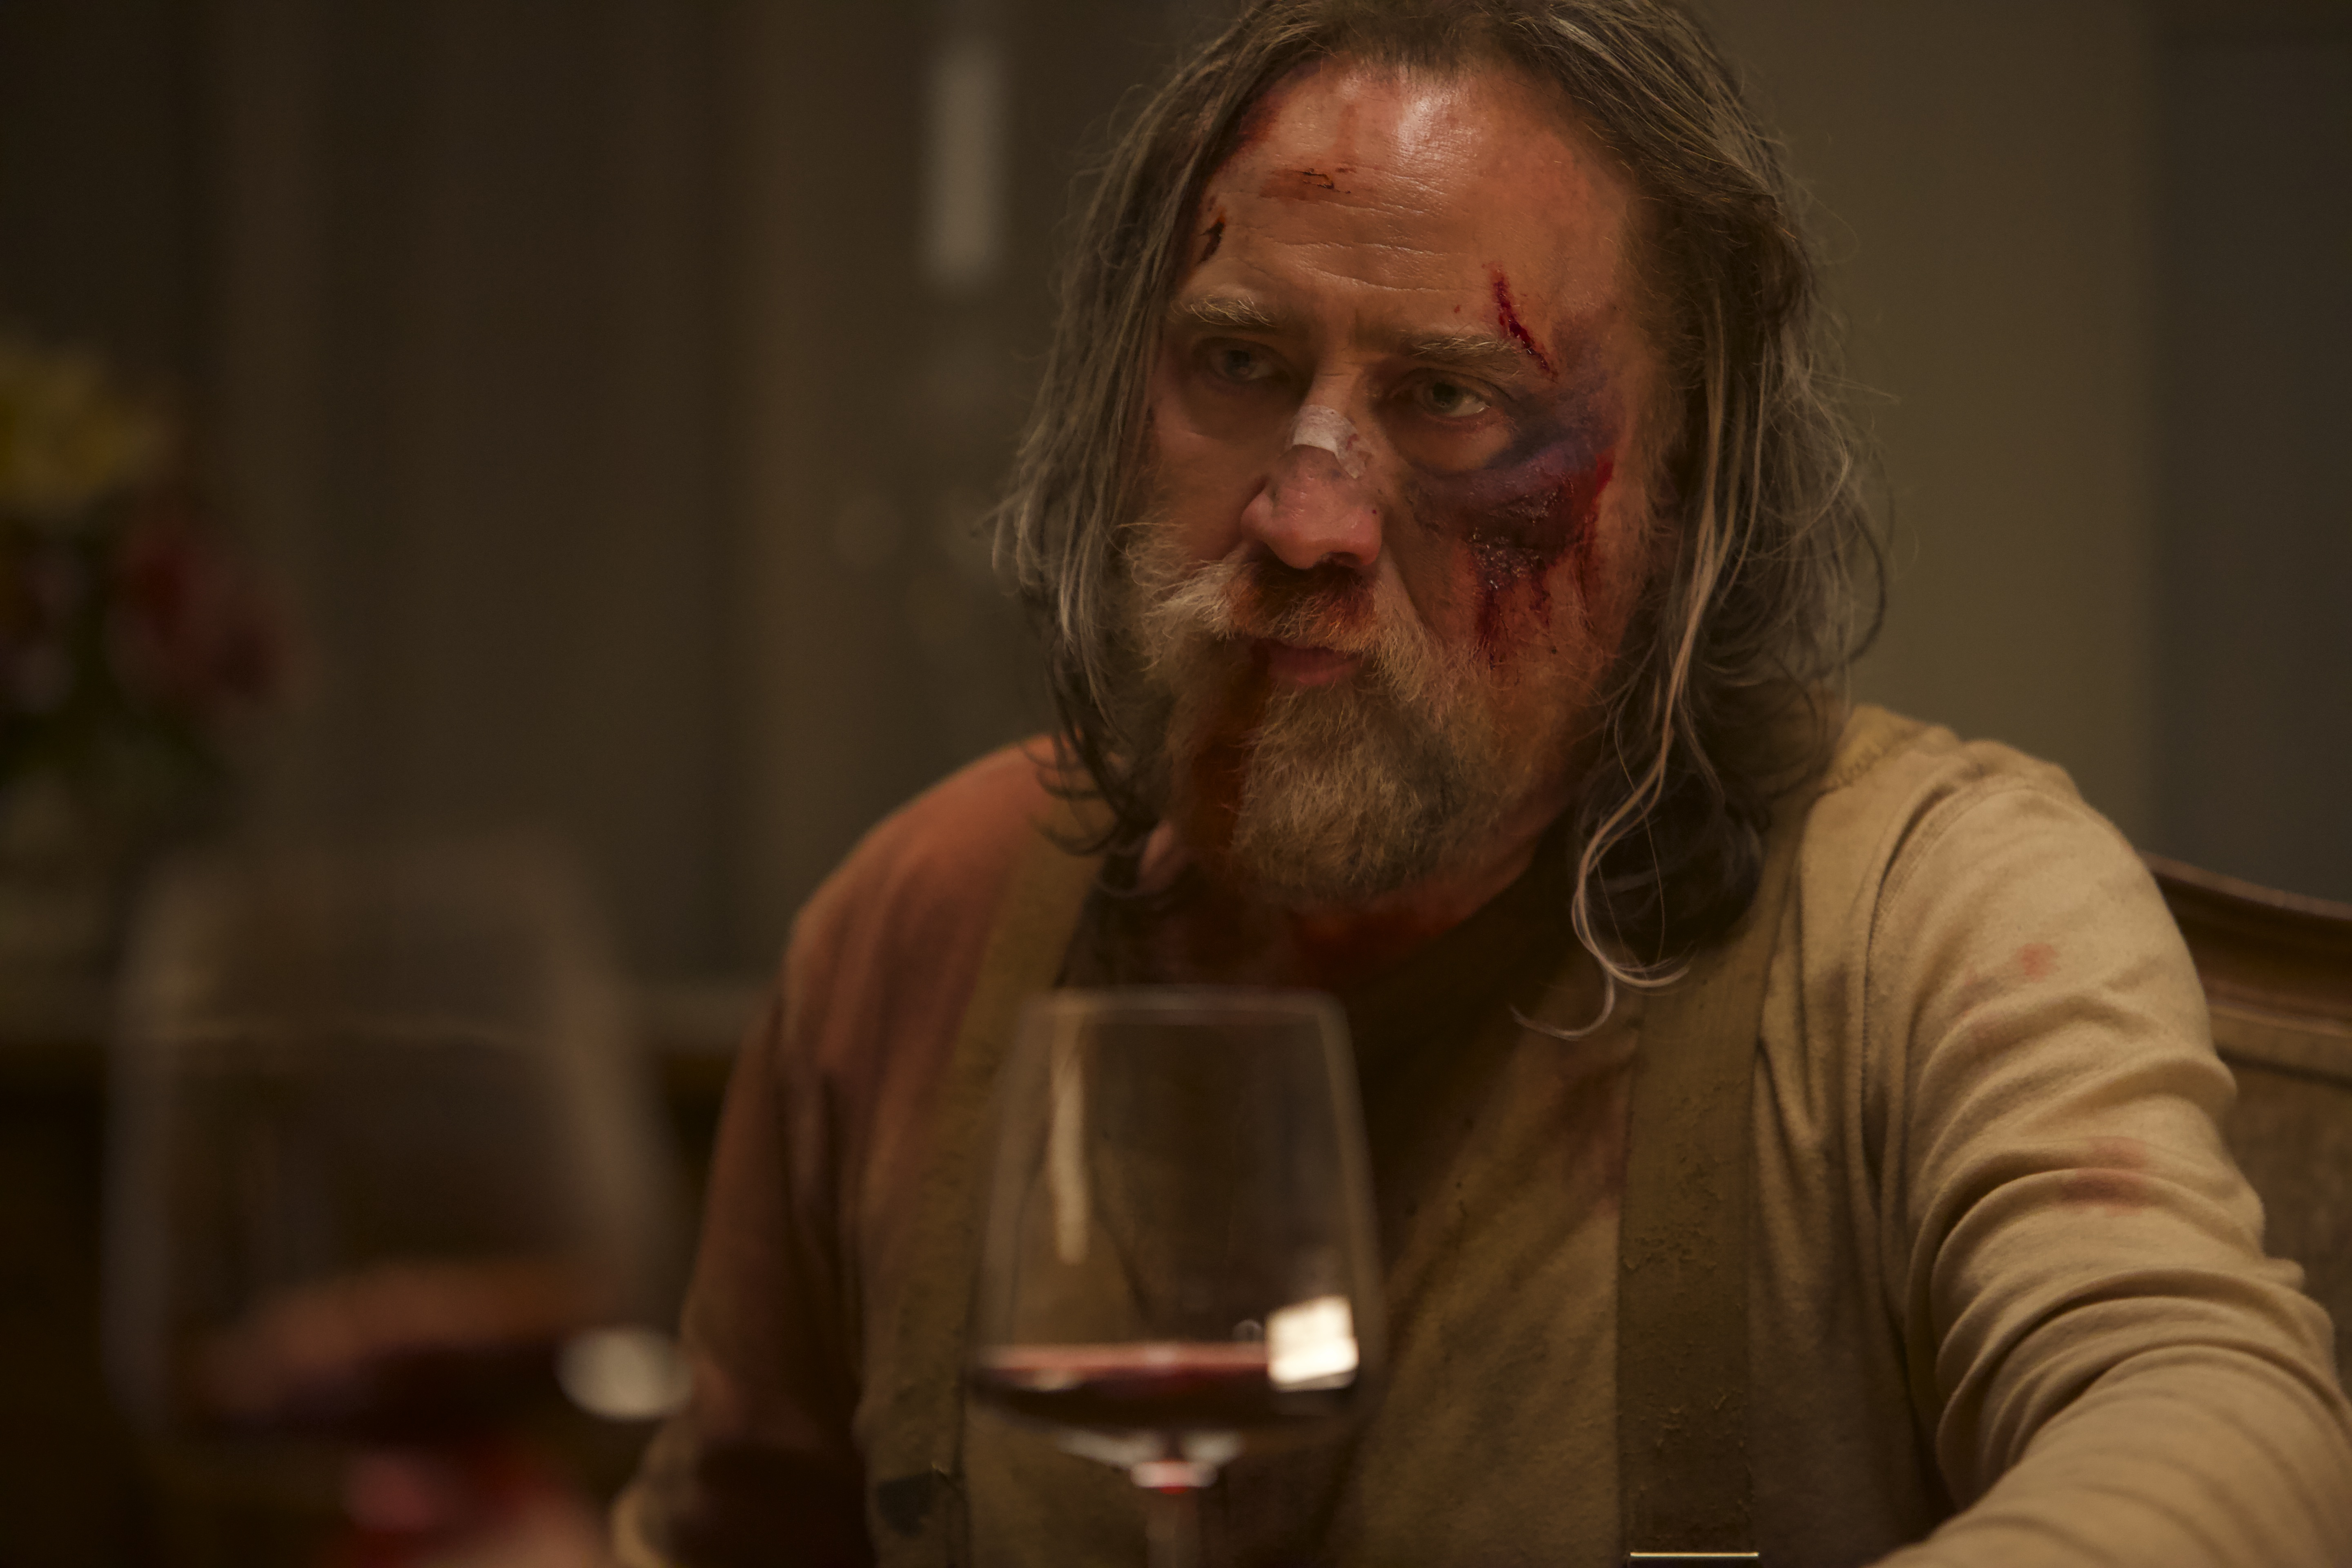 Nicolas Cage sits with a glass of wine in a still from the movie 'Pig.'